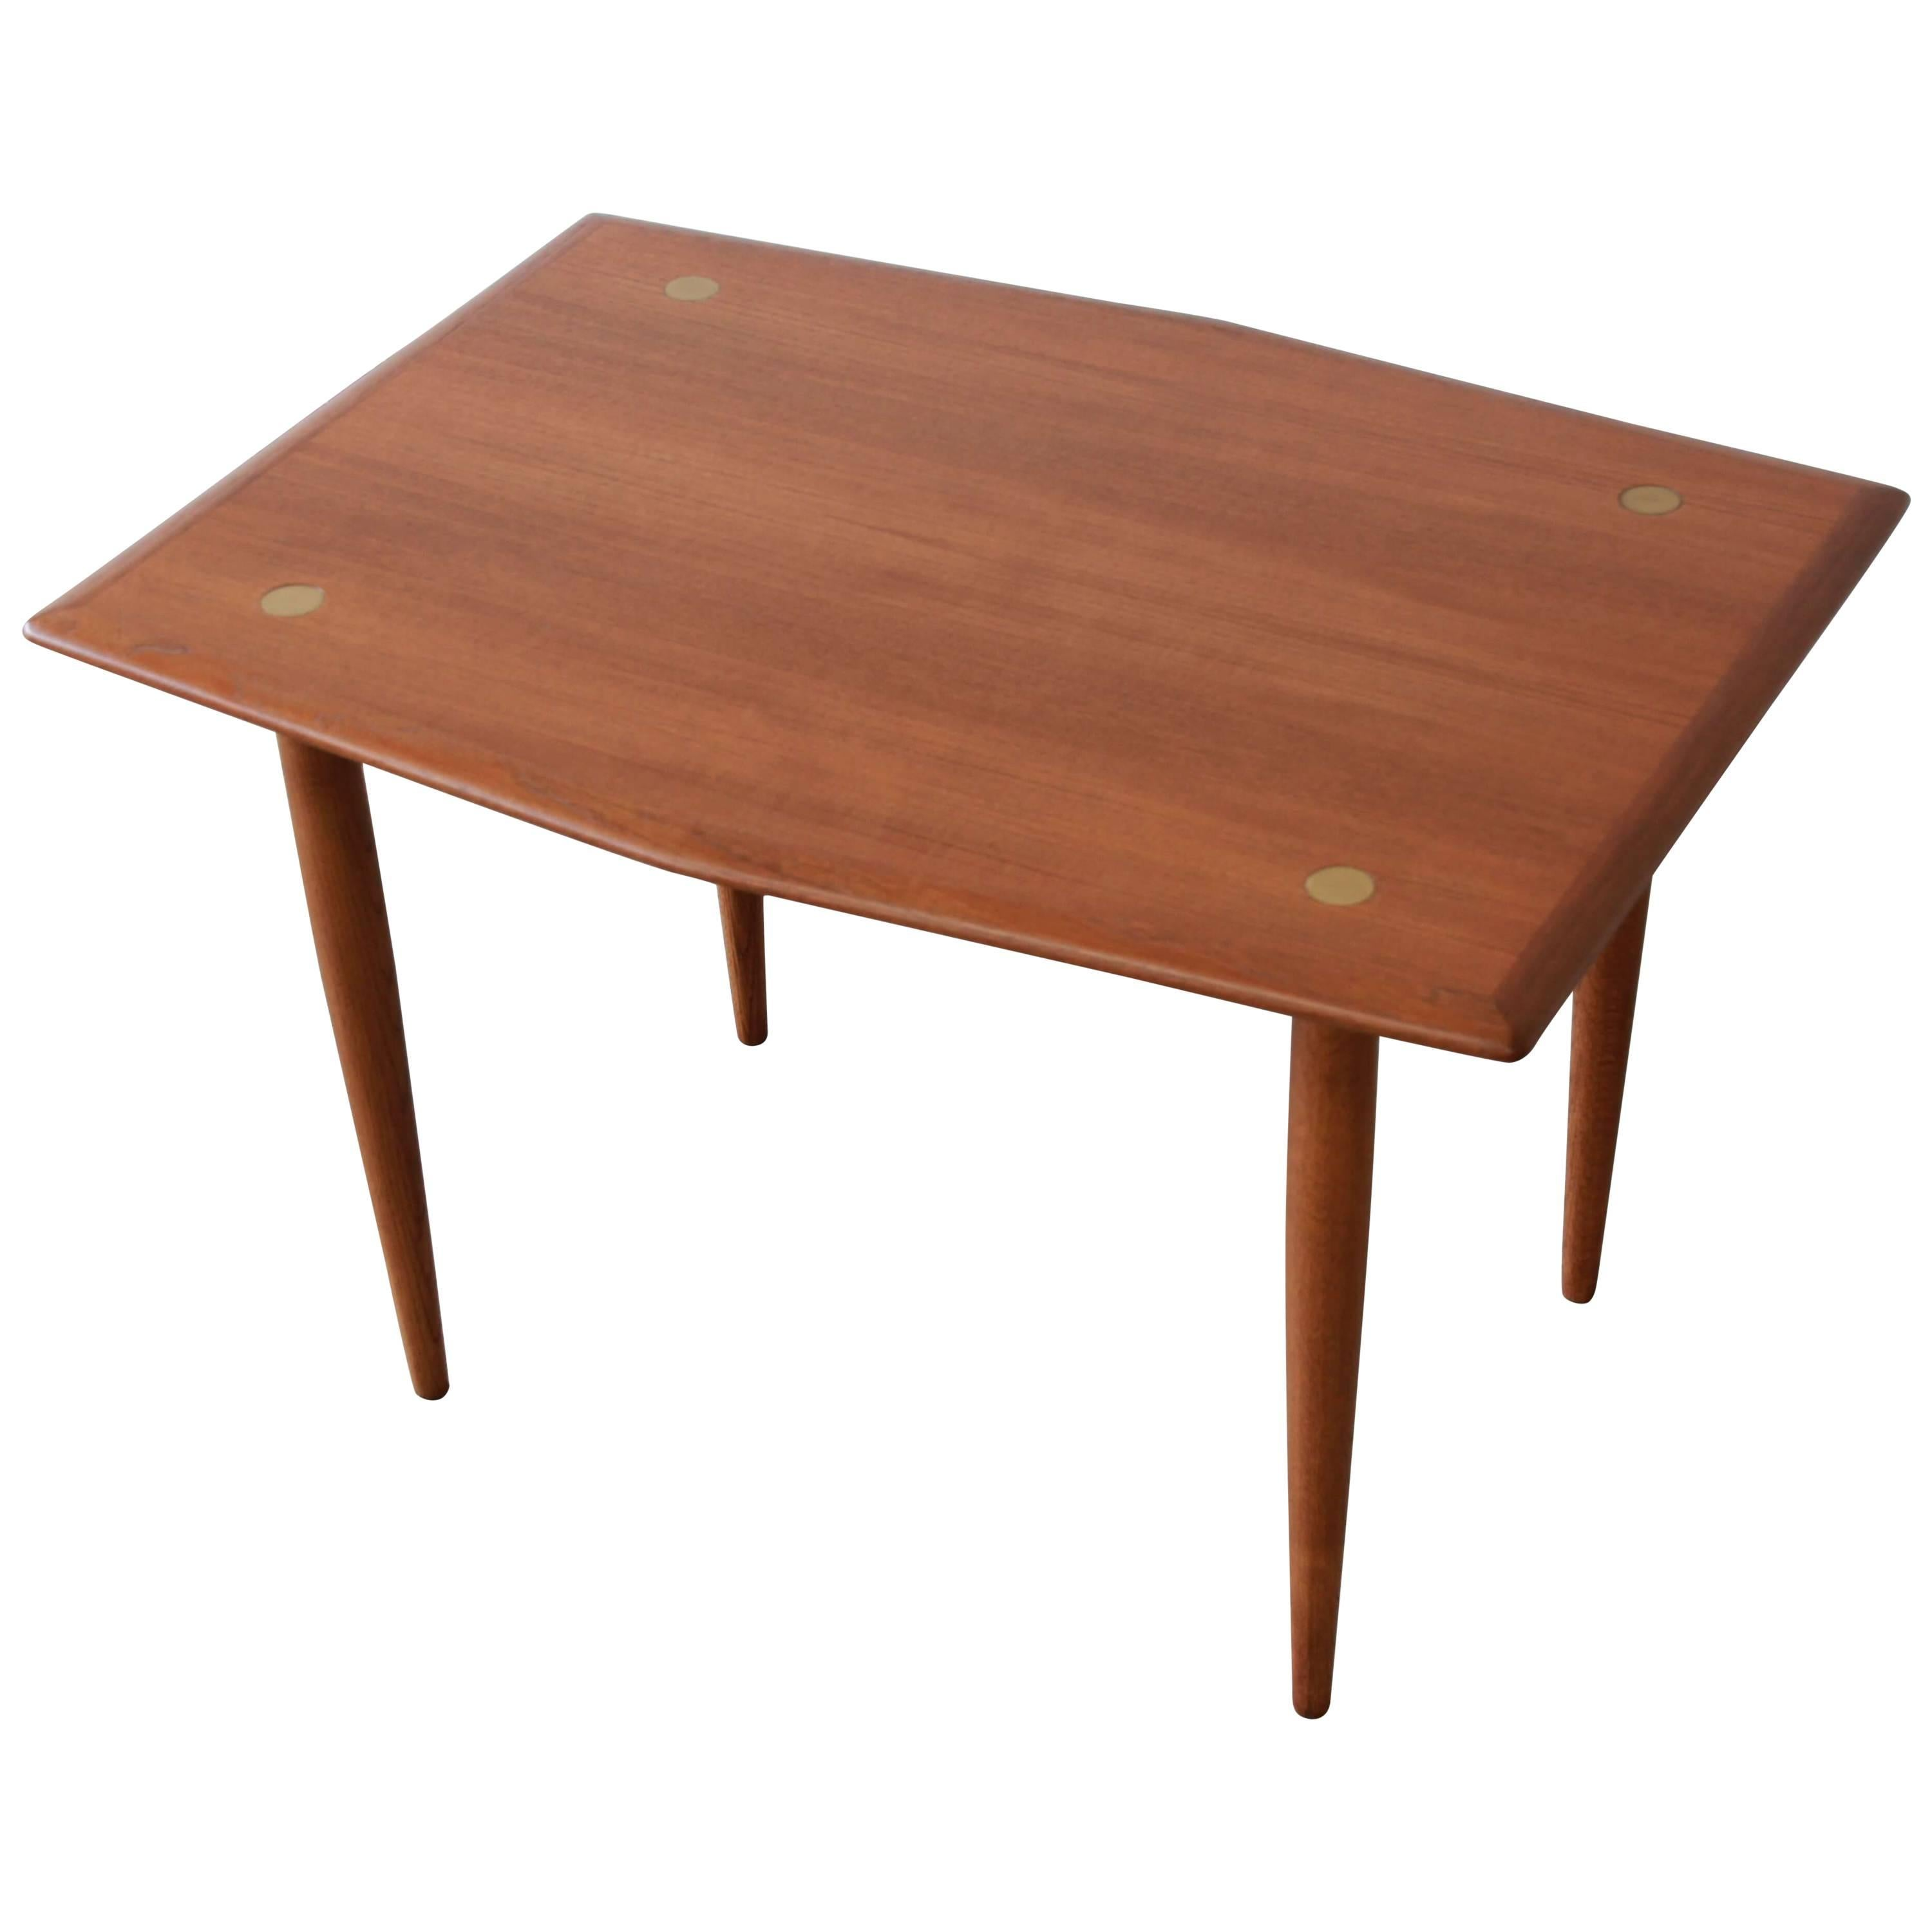 Swedish Modern Teak and Brass Side Table by Dux